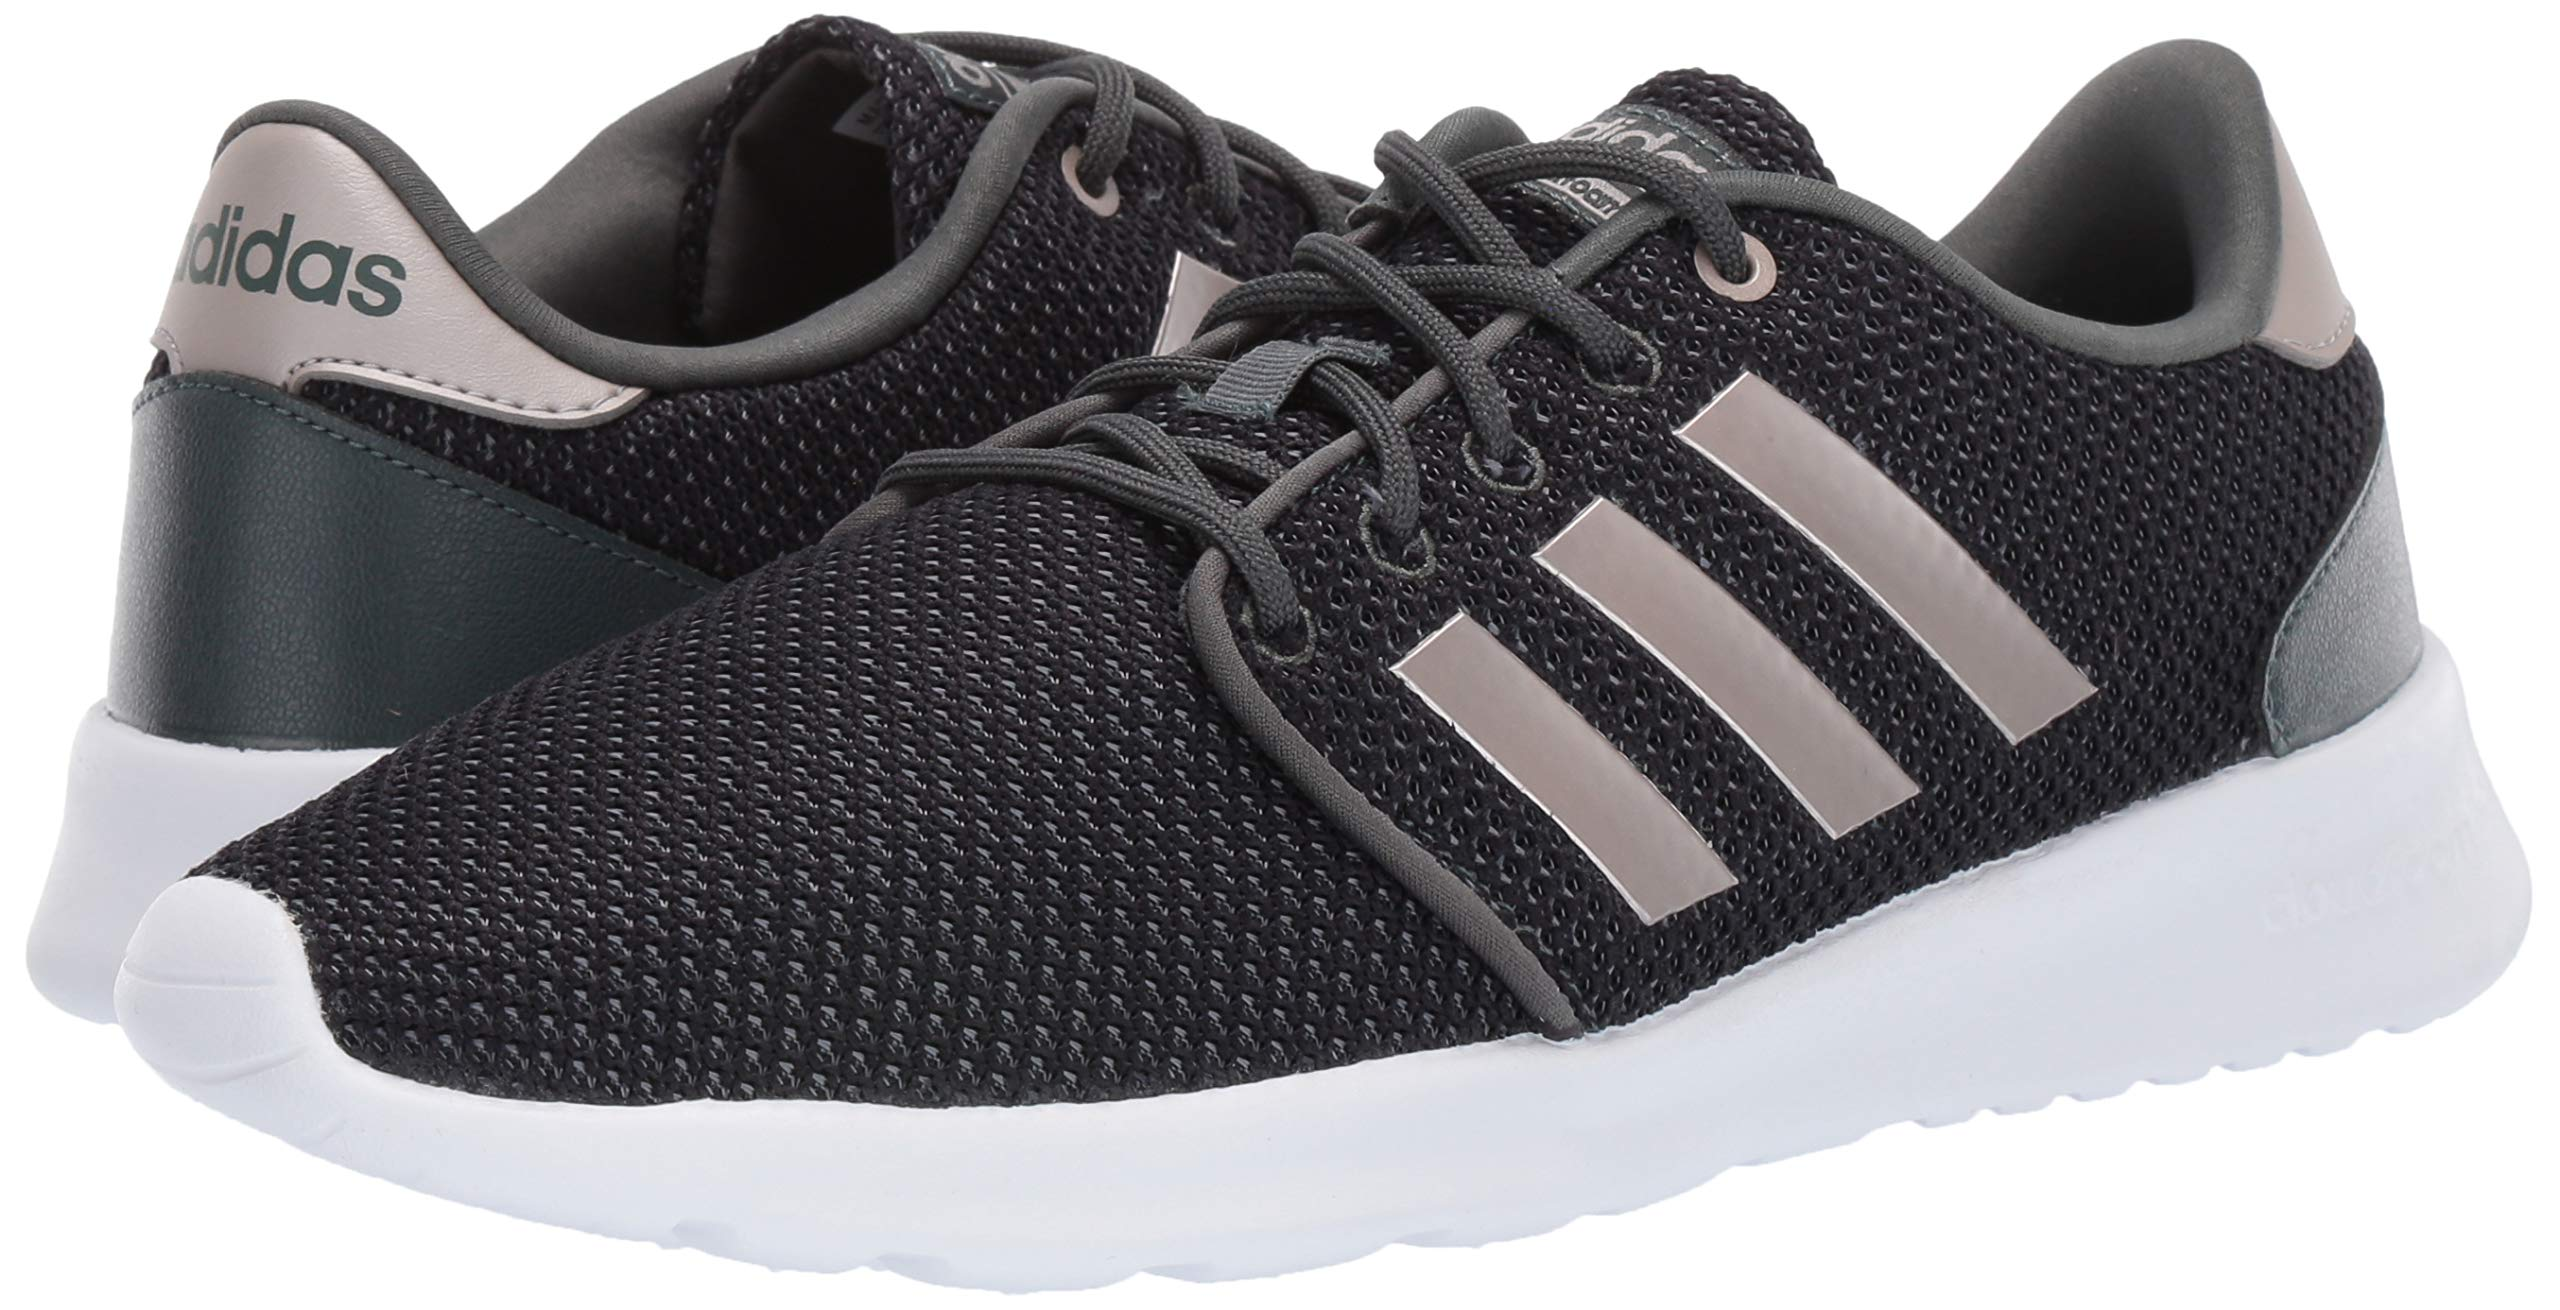 adidas Women's Cloudfoam QT Racer, Legend Ivy/Platino Metallic/Black 5 M US by adidas (Image #5)